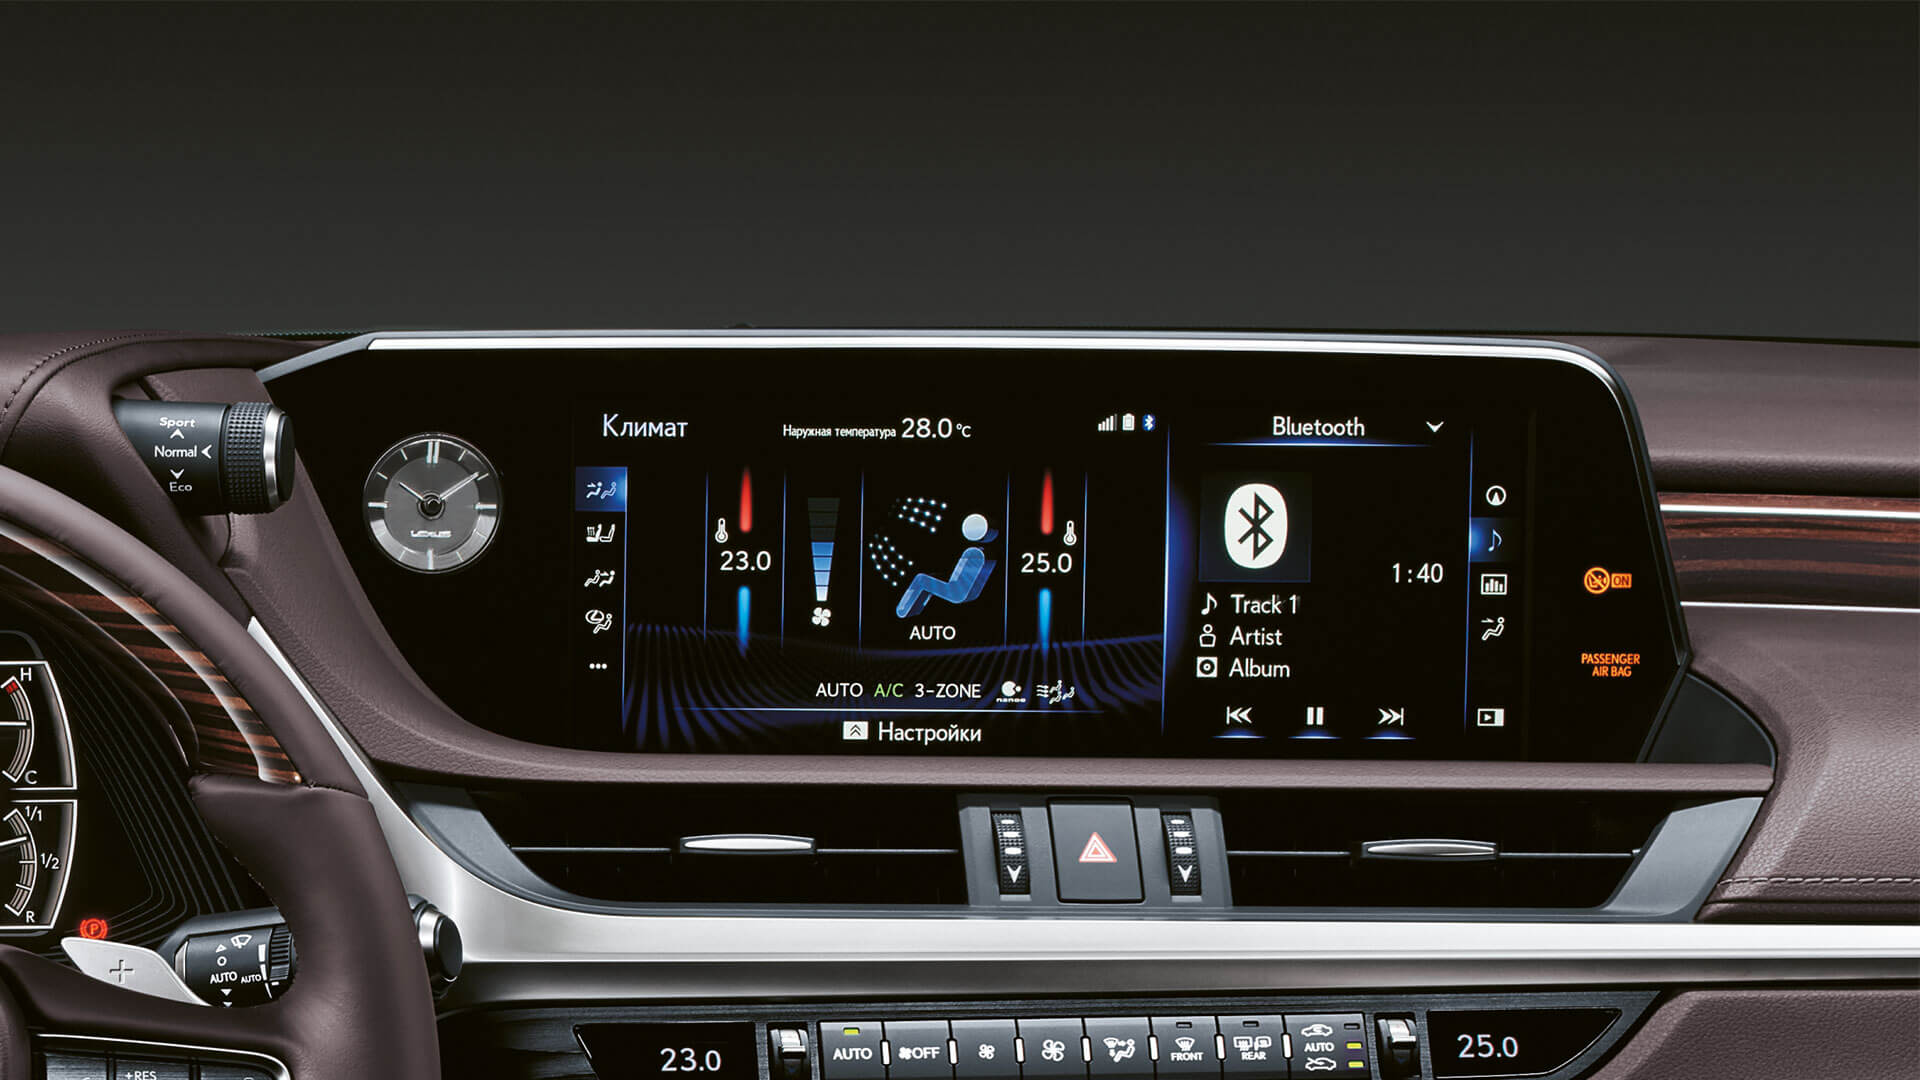 2019 lexus es hybrid experience feature climate control